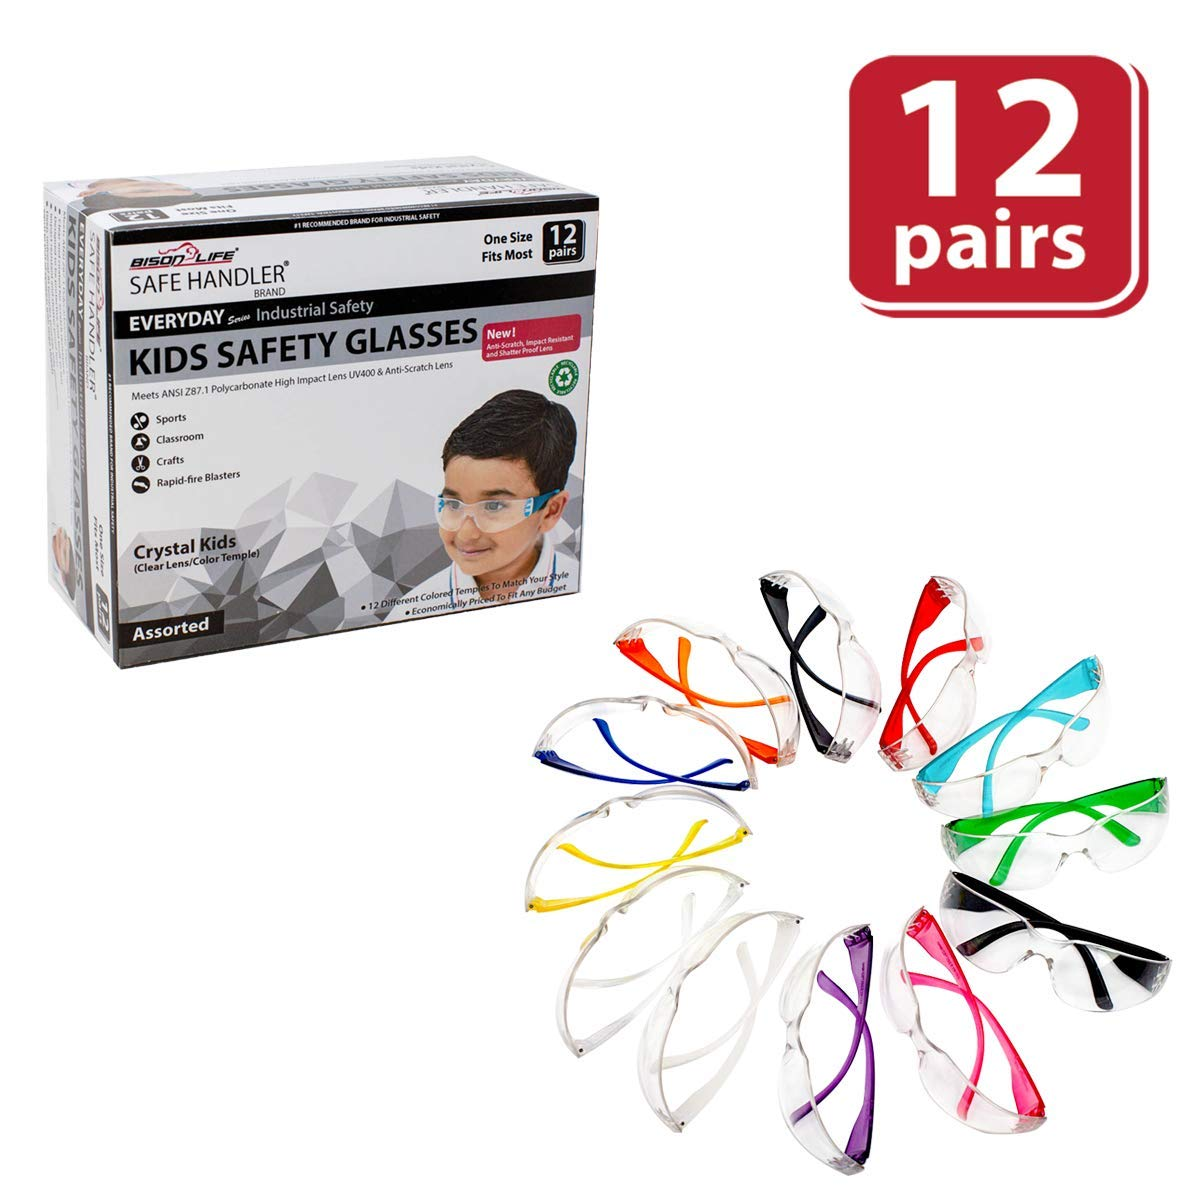 BISON LIFE Kids Protective Safety Glasses | Impact and Ballistic Resistant Lens, Clear Polycarbonate Lens Color Temple, Child Youth Size (Box of 12 Colors - Variety Pack) by BISON LIFE